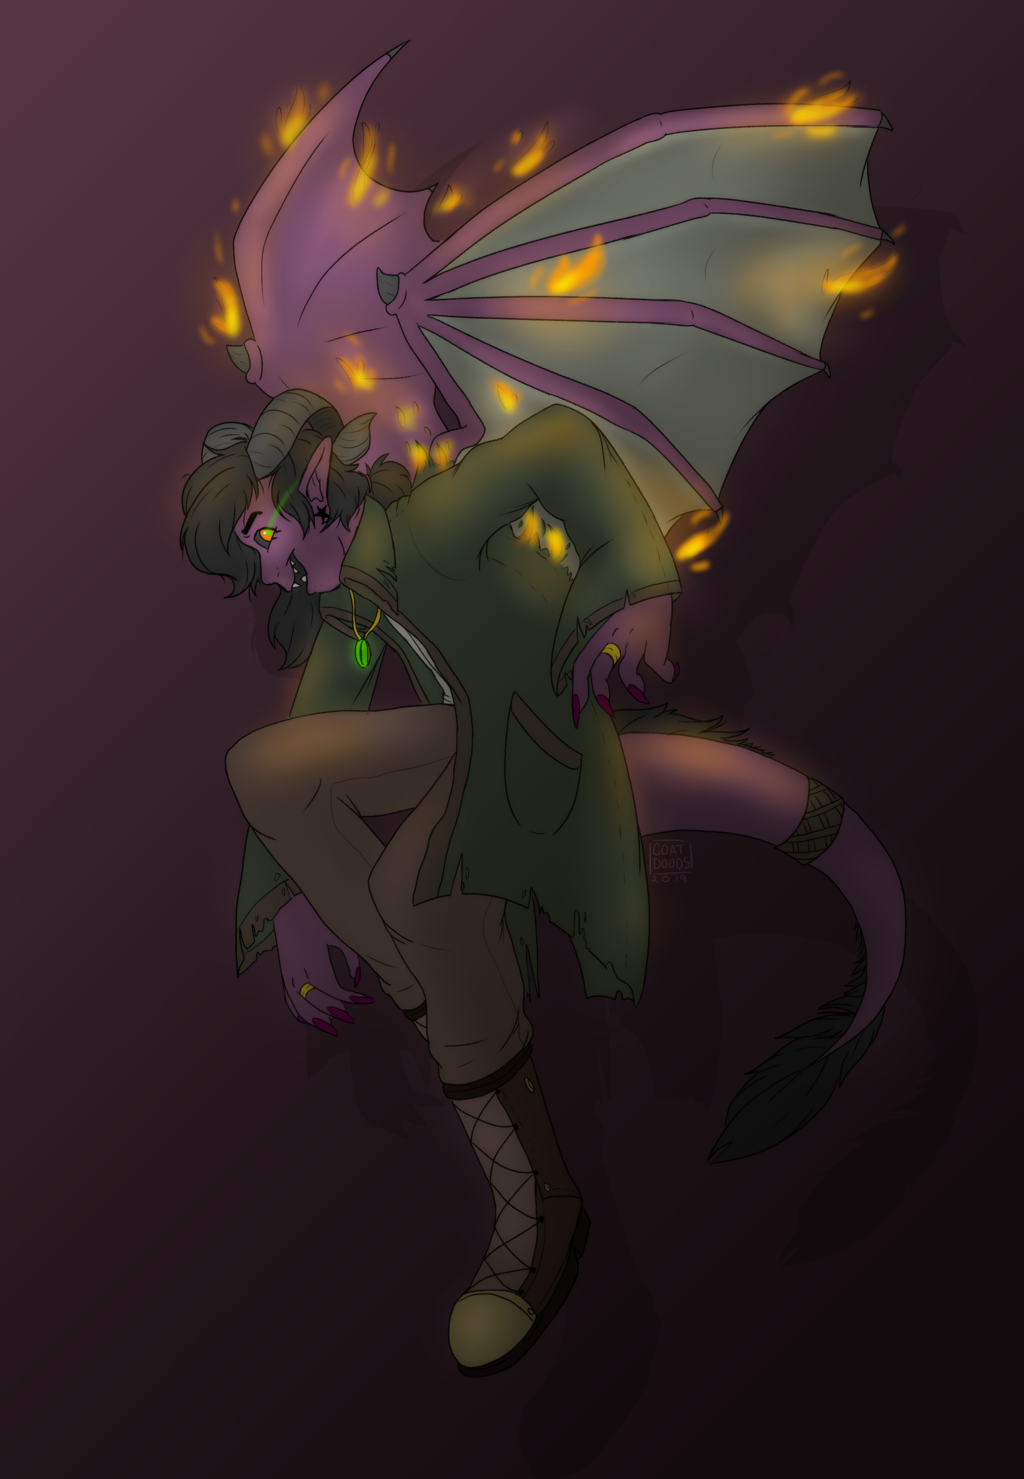 Aton the Tiefling Sorcerer